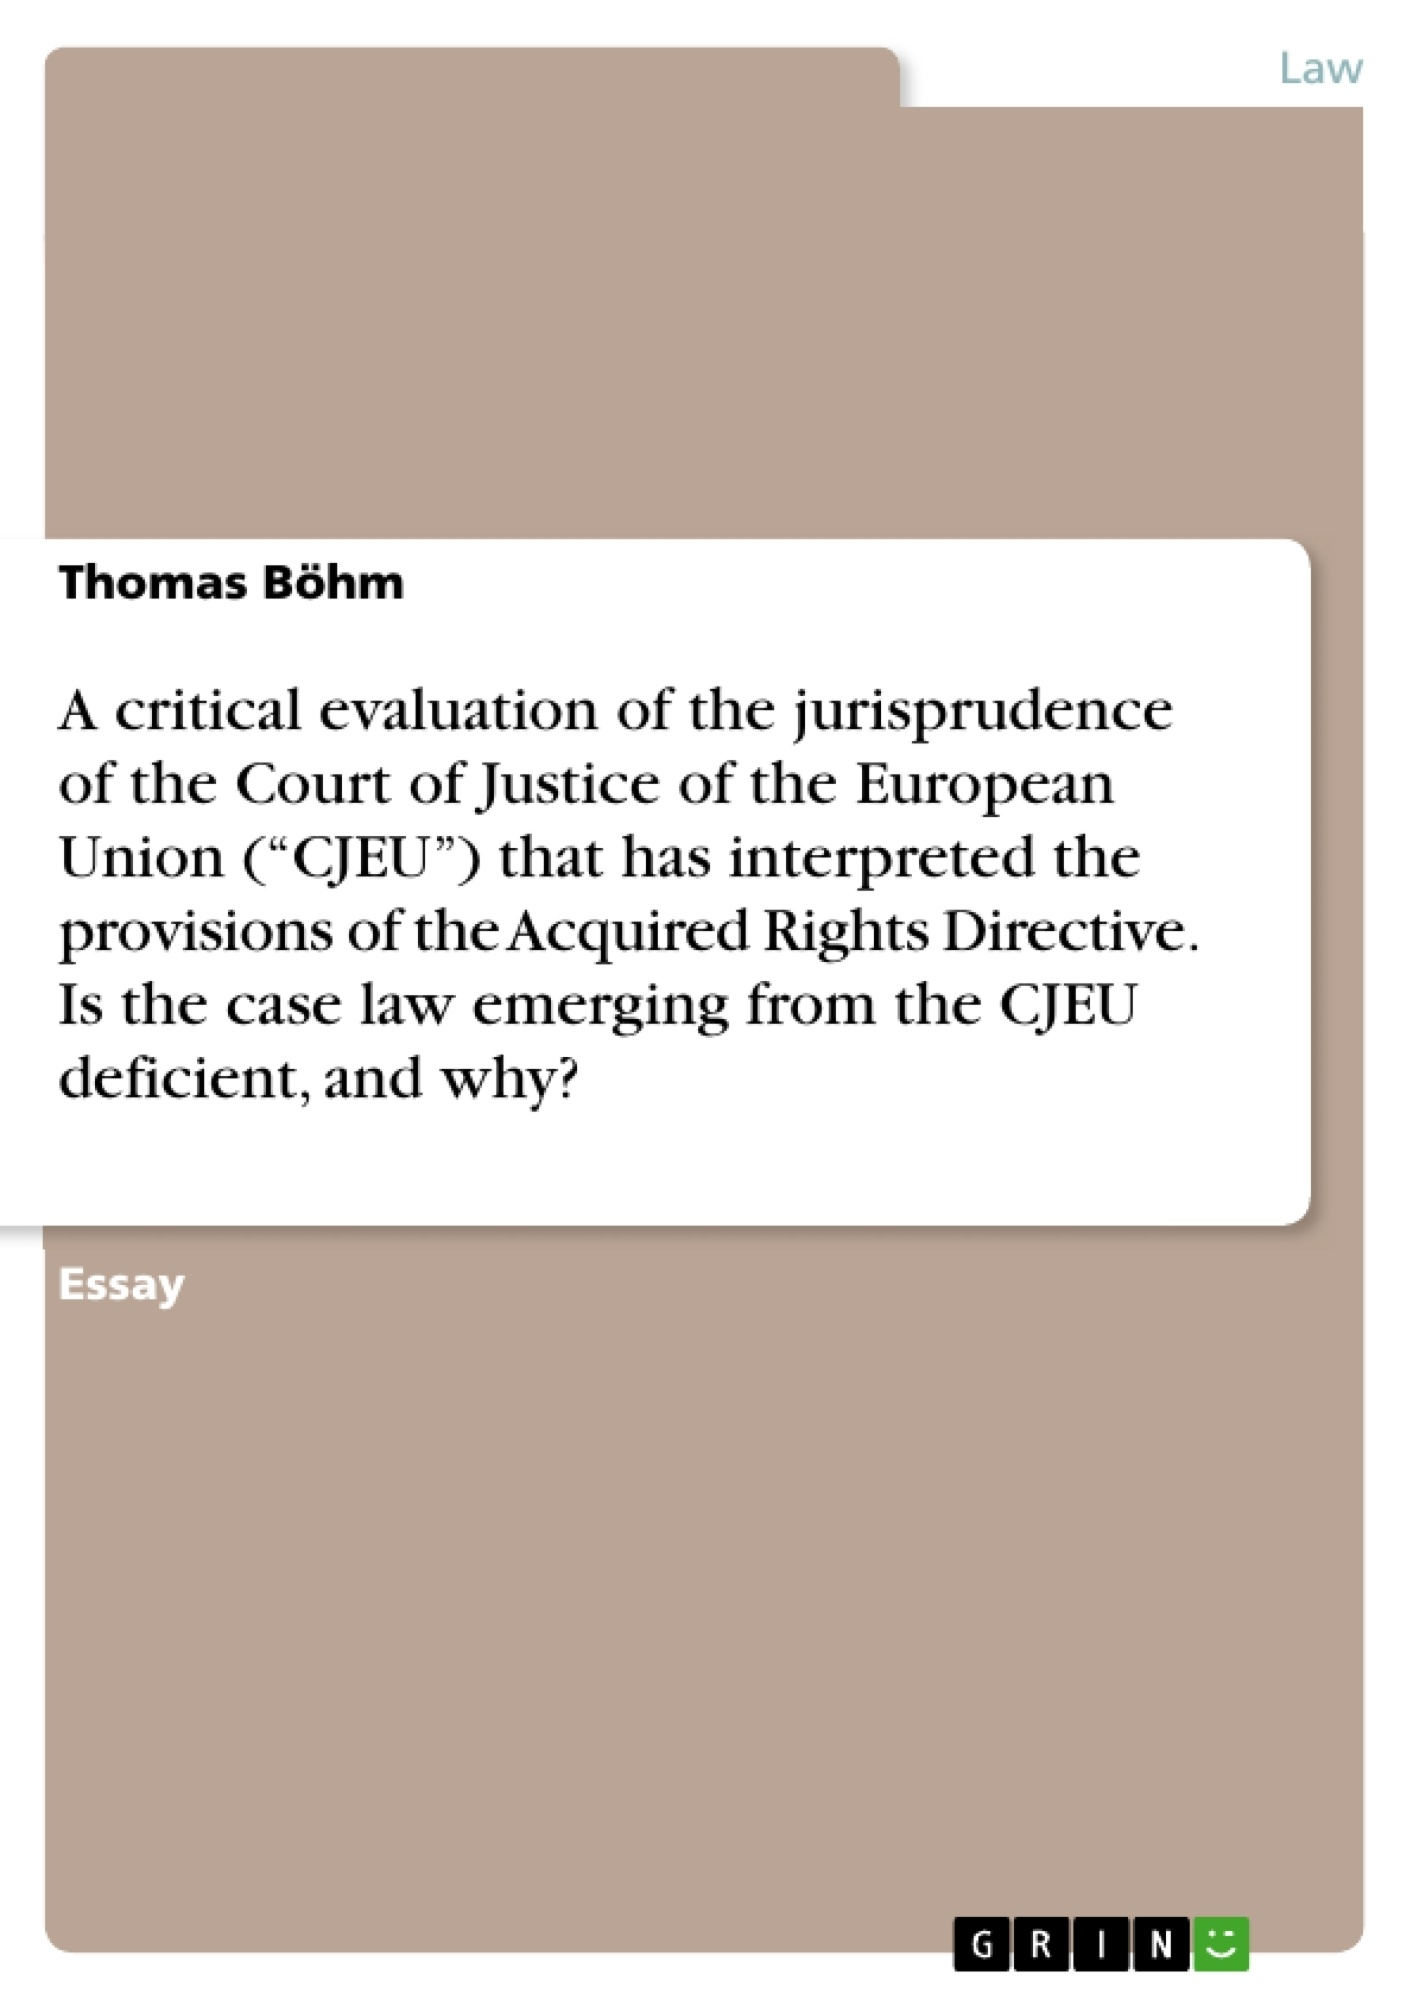 """Title: A critical evaluation of the jurisprudence of the Court of Justice of the European Union (""""CJEU"""") that has interpreted the provisions of the Acquired Rights Directive. Is the case law emerging from the CJEU deficient, and why?"""